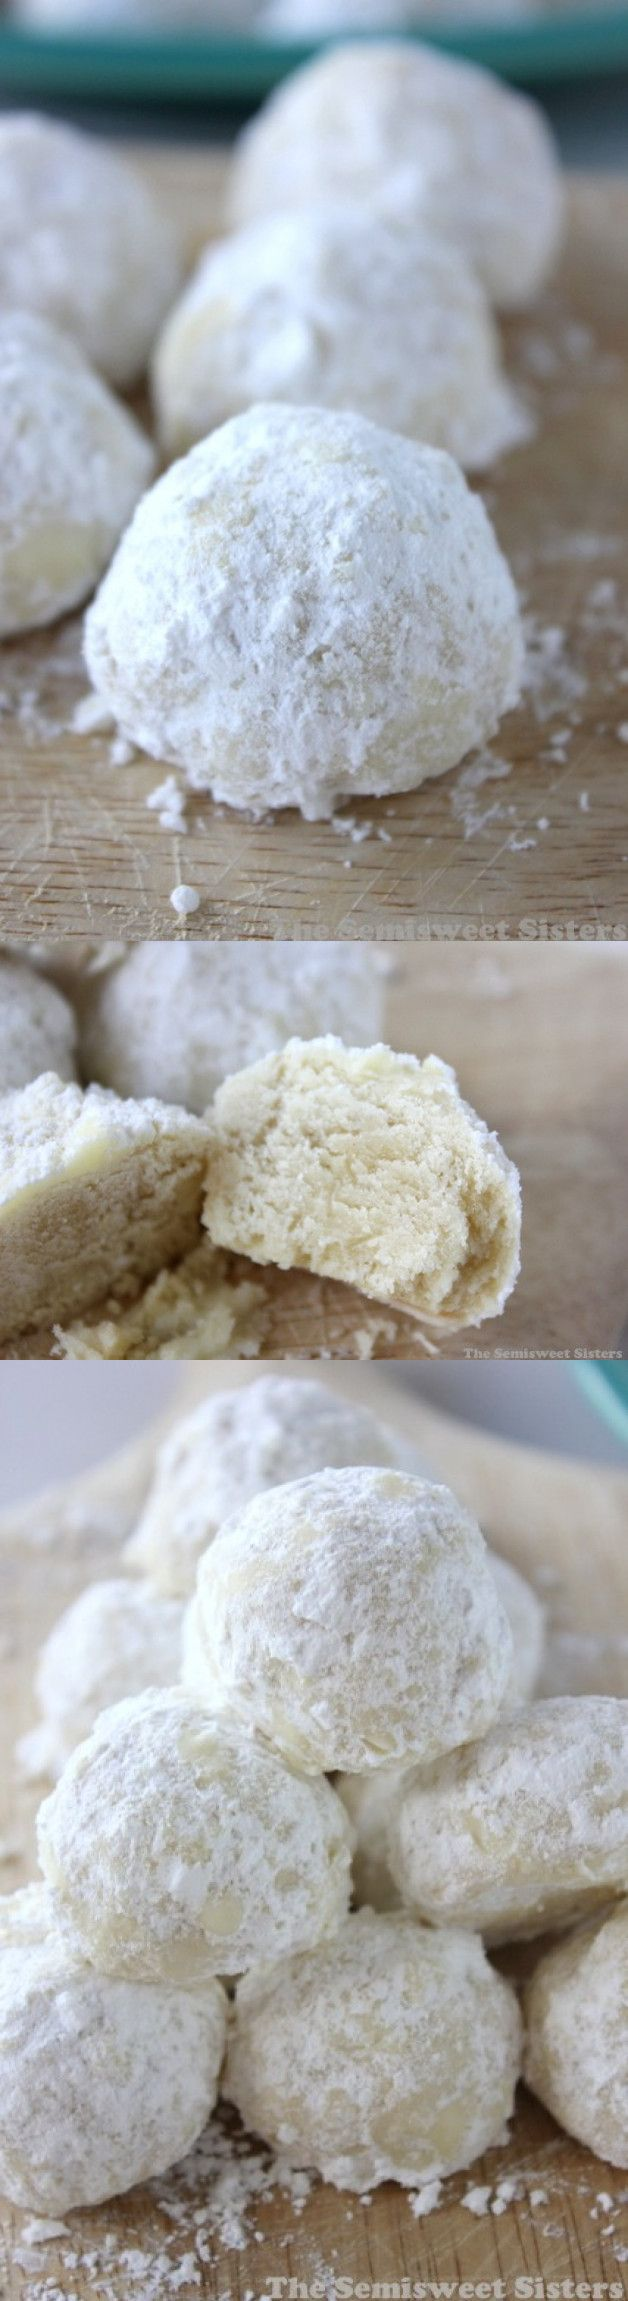 Snowball Cookies (Without Nuts Receita